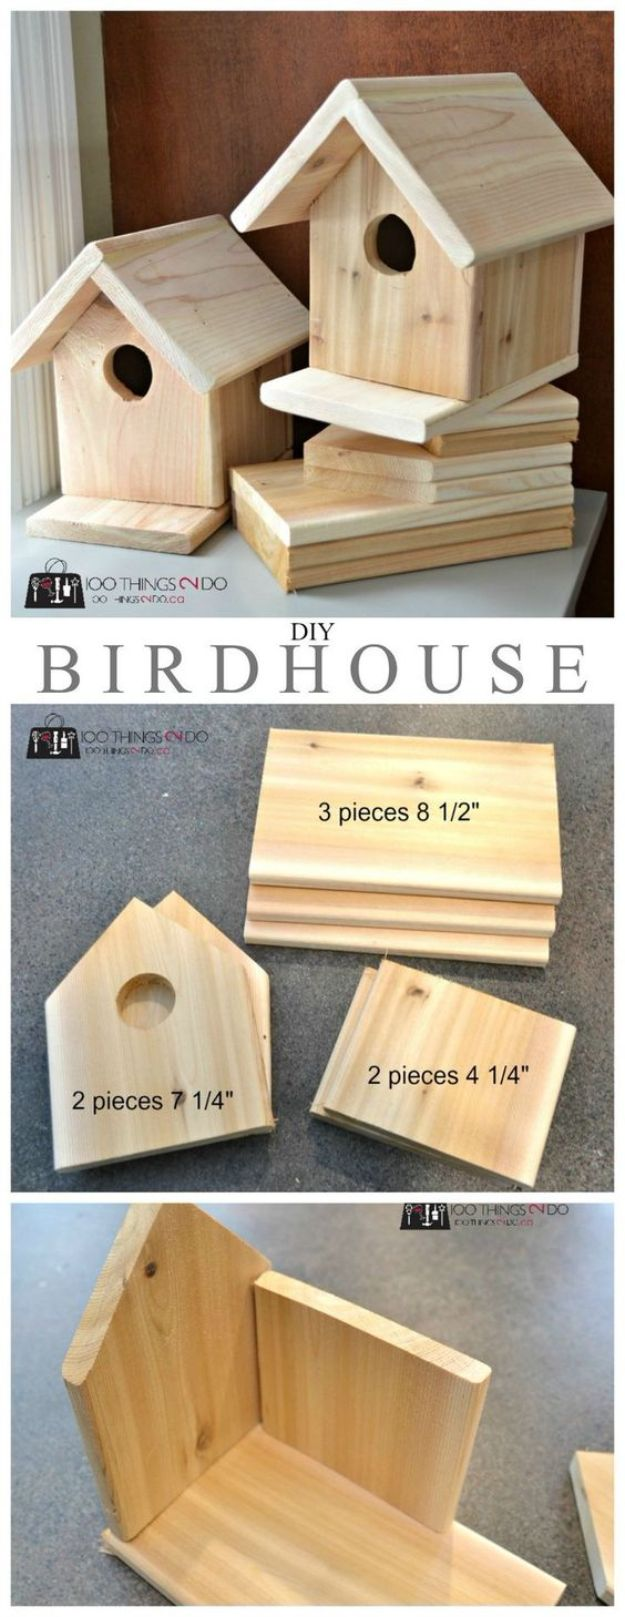 DIY Bird Houses - DIY Cedar Birdhouse - Easy Bird House Ideas for Kids and Adult To Make - Free Plans and Tutorials for Wooden, Simple, Upcyle Designs, Recycle Plastic and Creative Ways To Make Rustic Outdoor Decor and a Home for the Birds - Fun Projects for Your Backyard This Summer http://diyjoy.com/diy-bird-houses